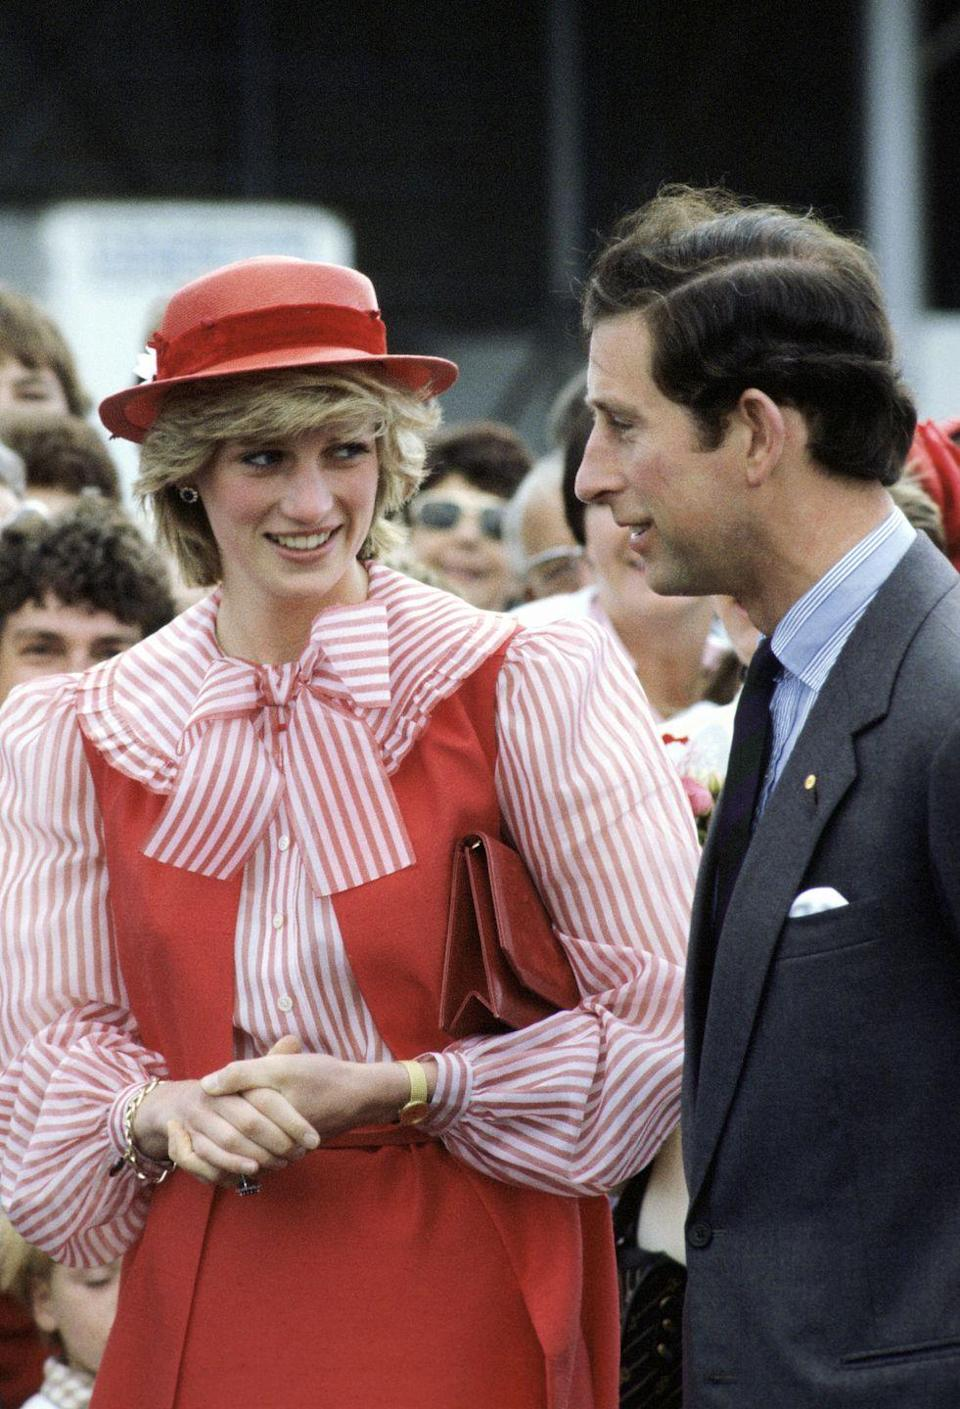 """<p>During <a href=""""https://www.townandcountrymag.com/society/tradition/a29339734/princess-diana-prince-charles-1983-australia-tour-the-crown/"""" rel=""""nofollow noopener"""" target=""""_blank"""" data-ylk=""""slk:an official visit to Australia"""" class=""""link rapid-noclick-resp"""">an official visit to Australia</a>, Diana chose a red and white striped outfit made by designer Bellville Sassoon. The playful look involved a coordinating red vest, skirt, and hat. Charles, too, opted for stripes, with his blue and white striped button-down. </p>"""